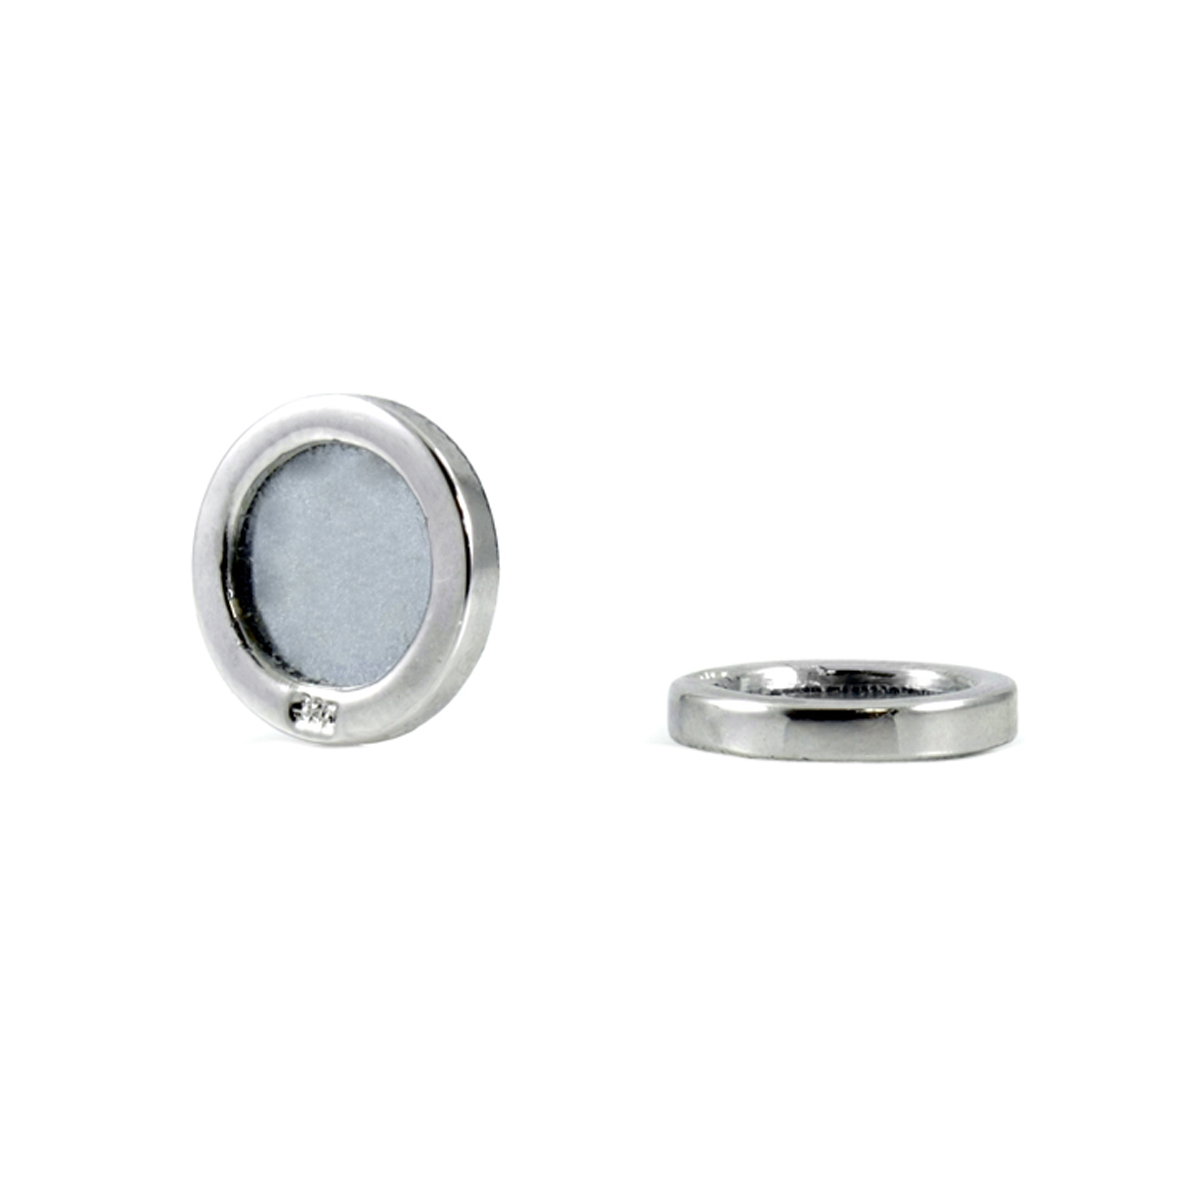 Magnetic Earring Backs  12mm Roll Off Image To Close Zoom Window